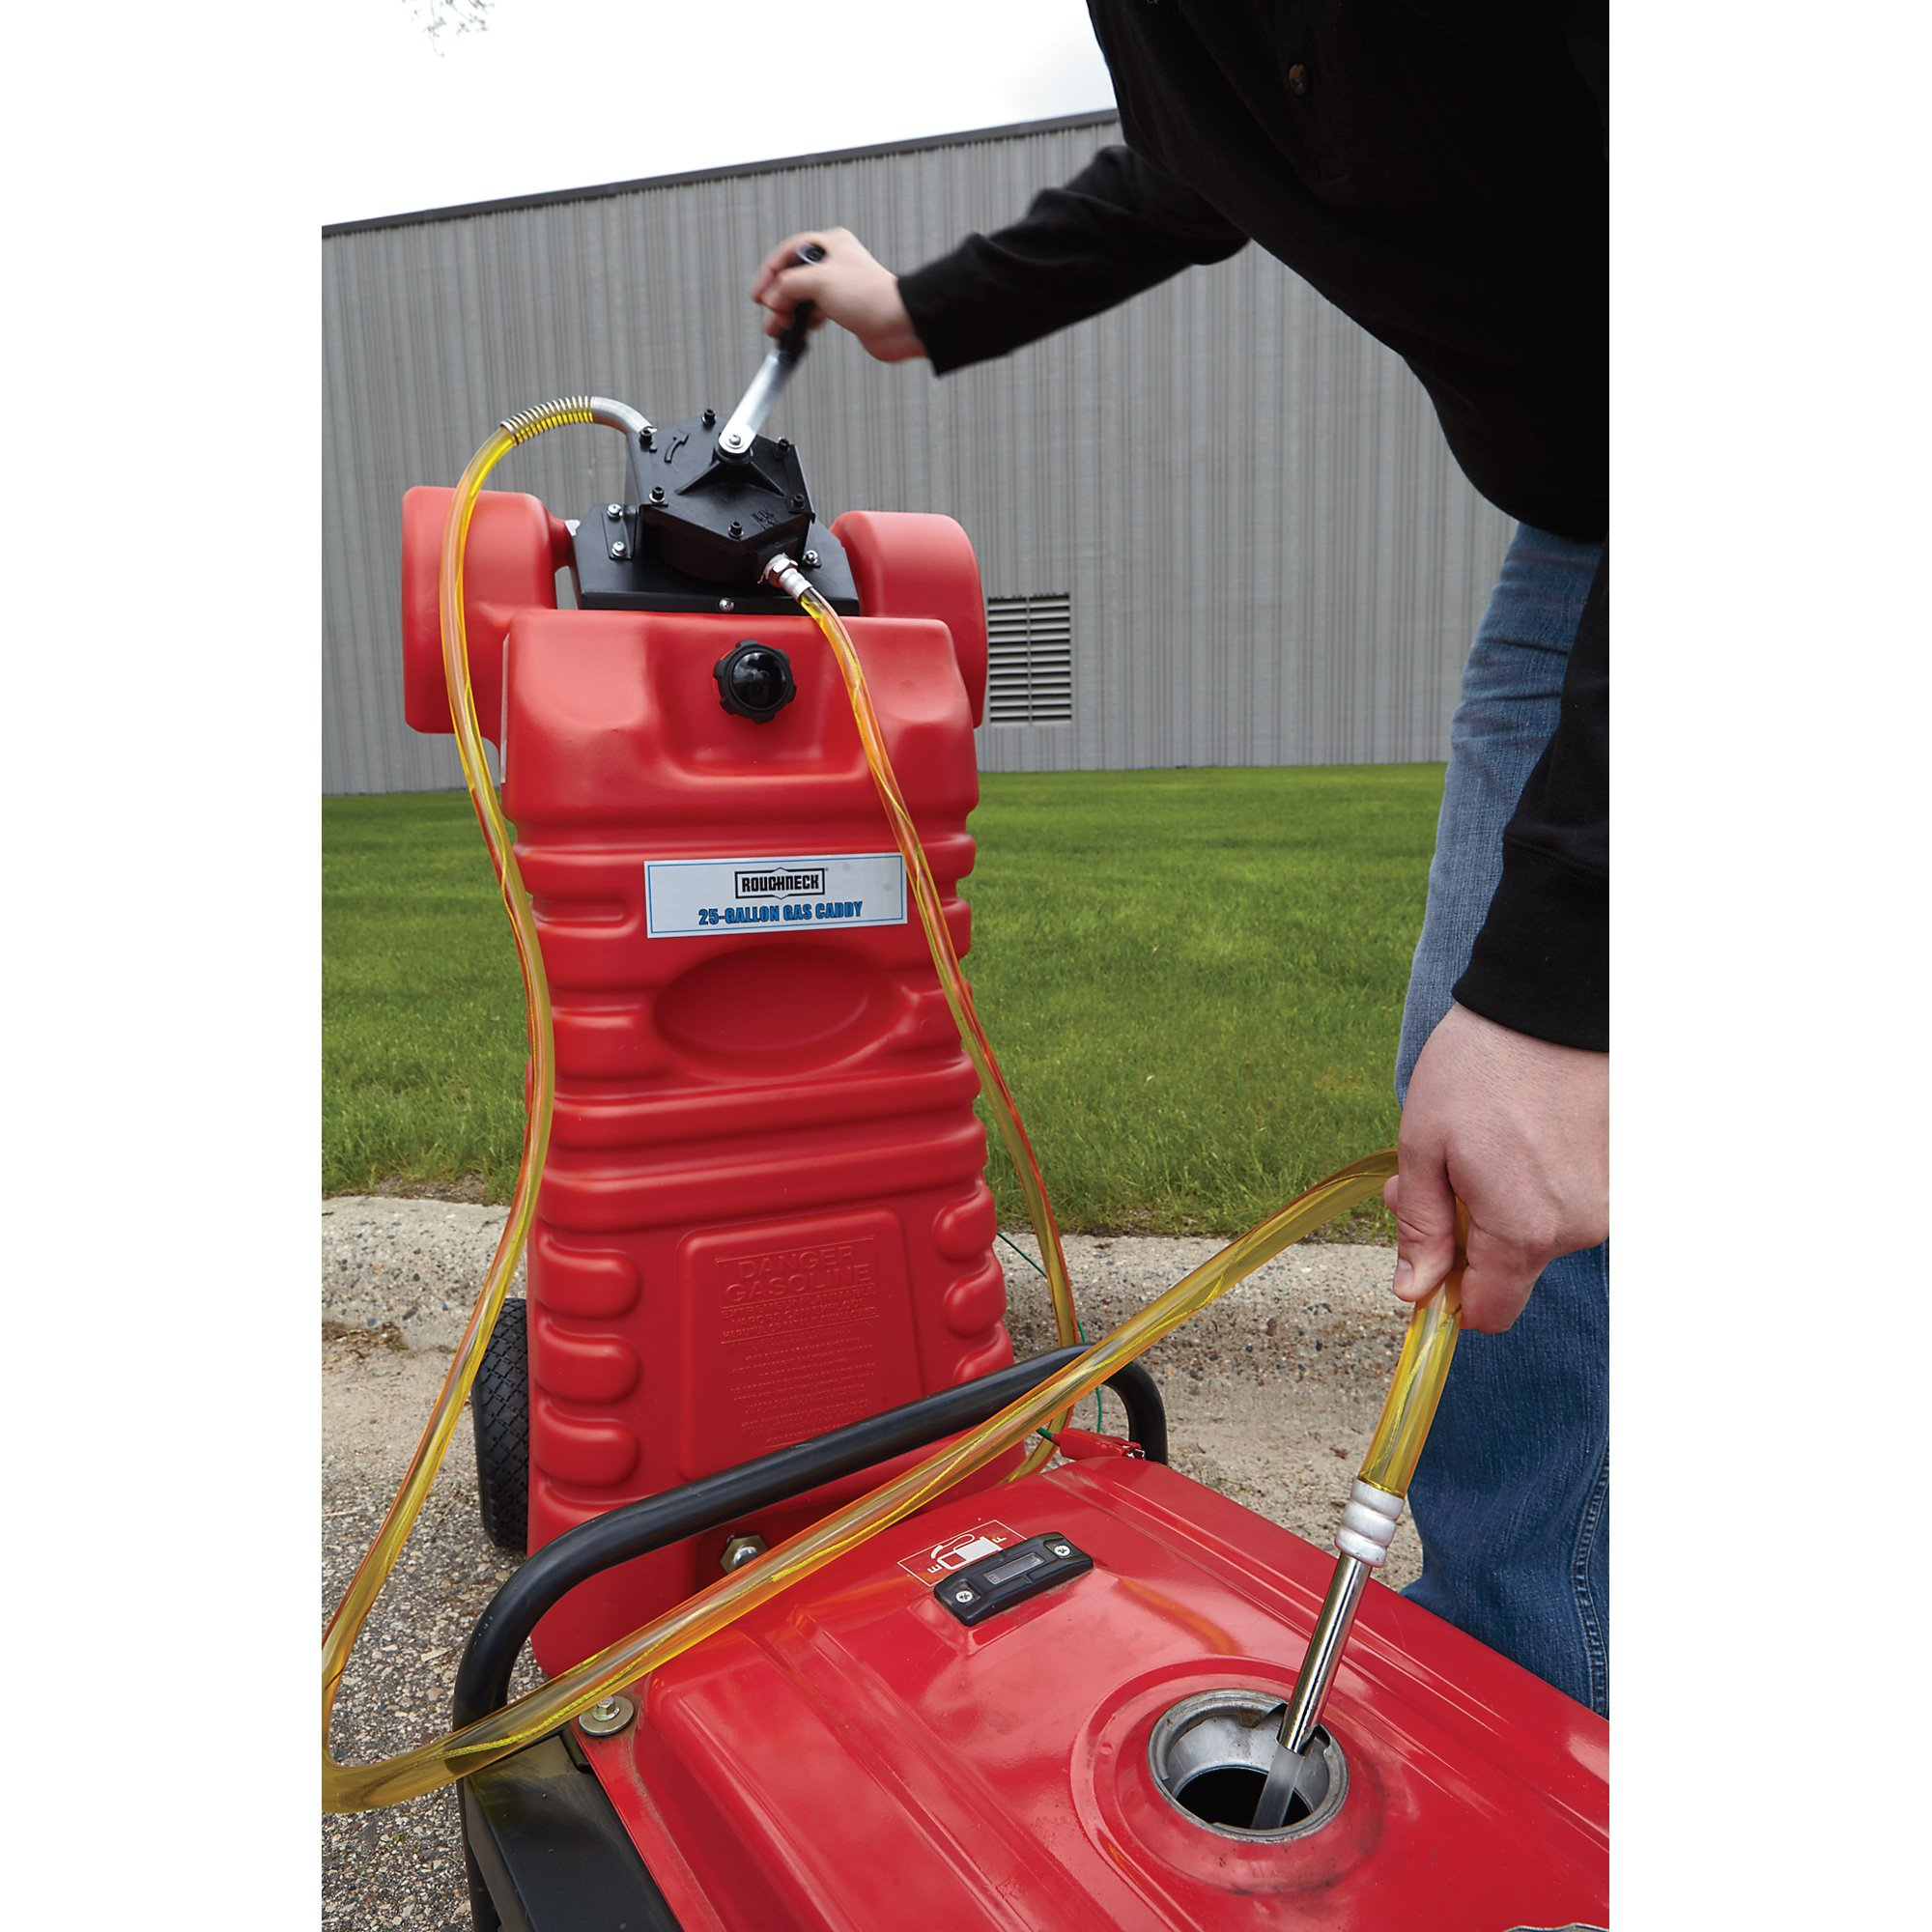 Roughneck Two-Way Rotary Pump Kit - Delivers 1-Gal. Per 12 Revolutions by Roughneck (Image #4)